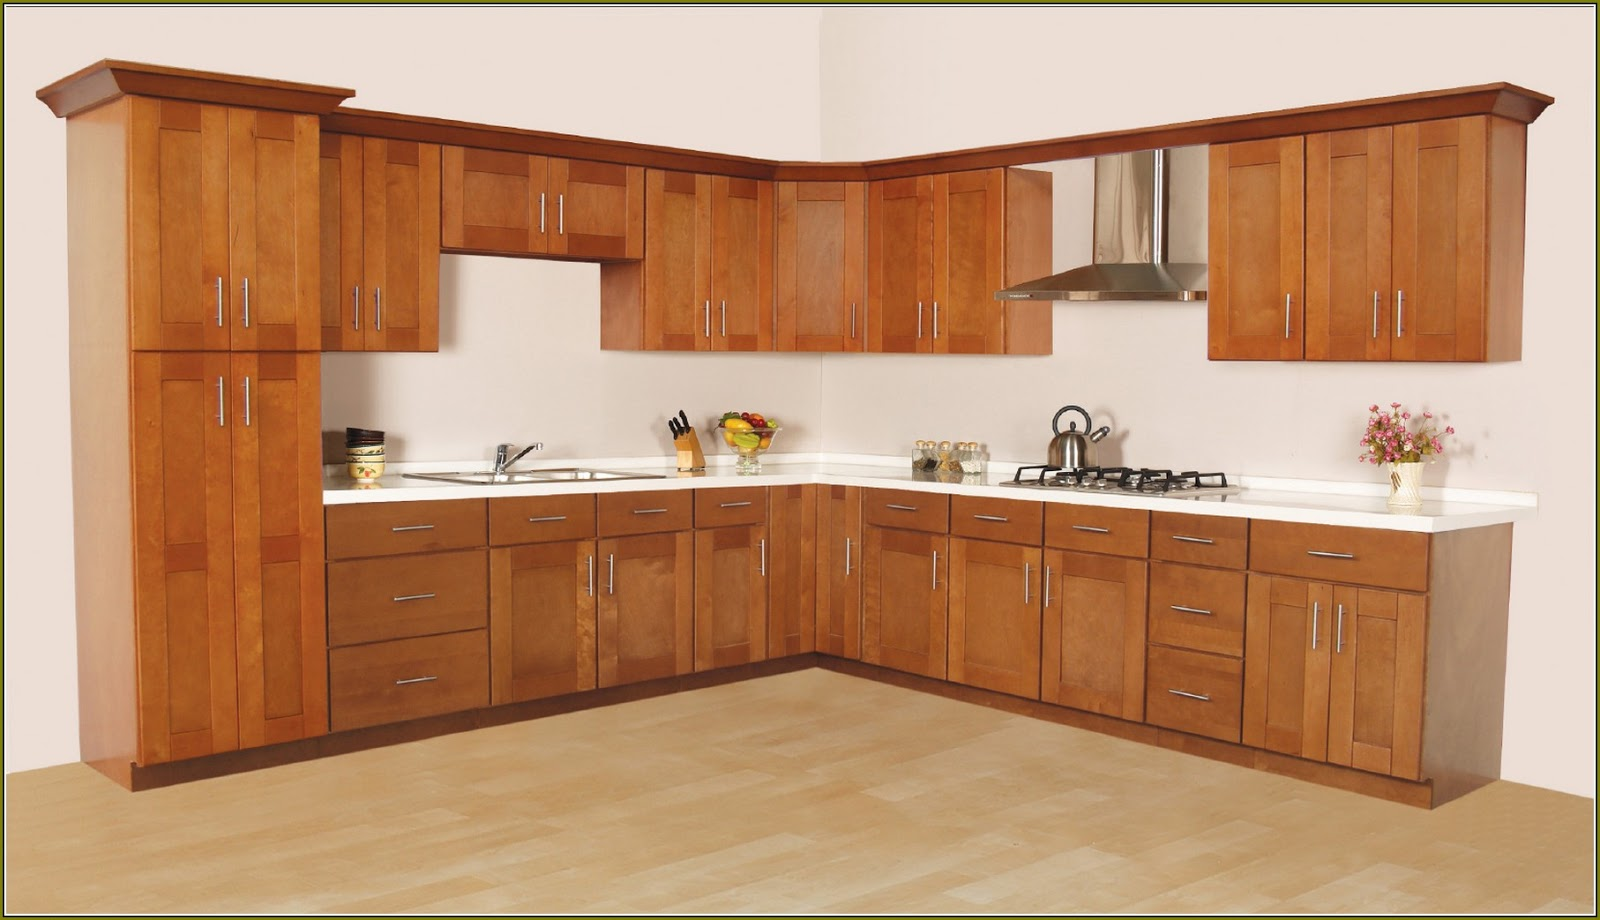 How to Stain Unfinished Cabinets from Lowes | Methods of 2018